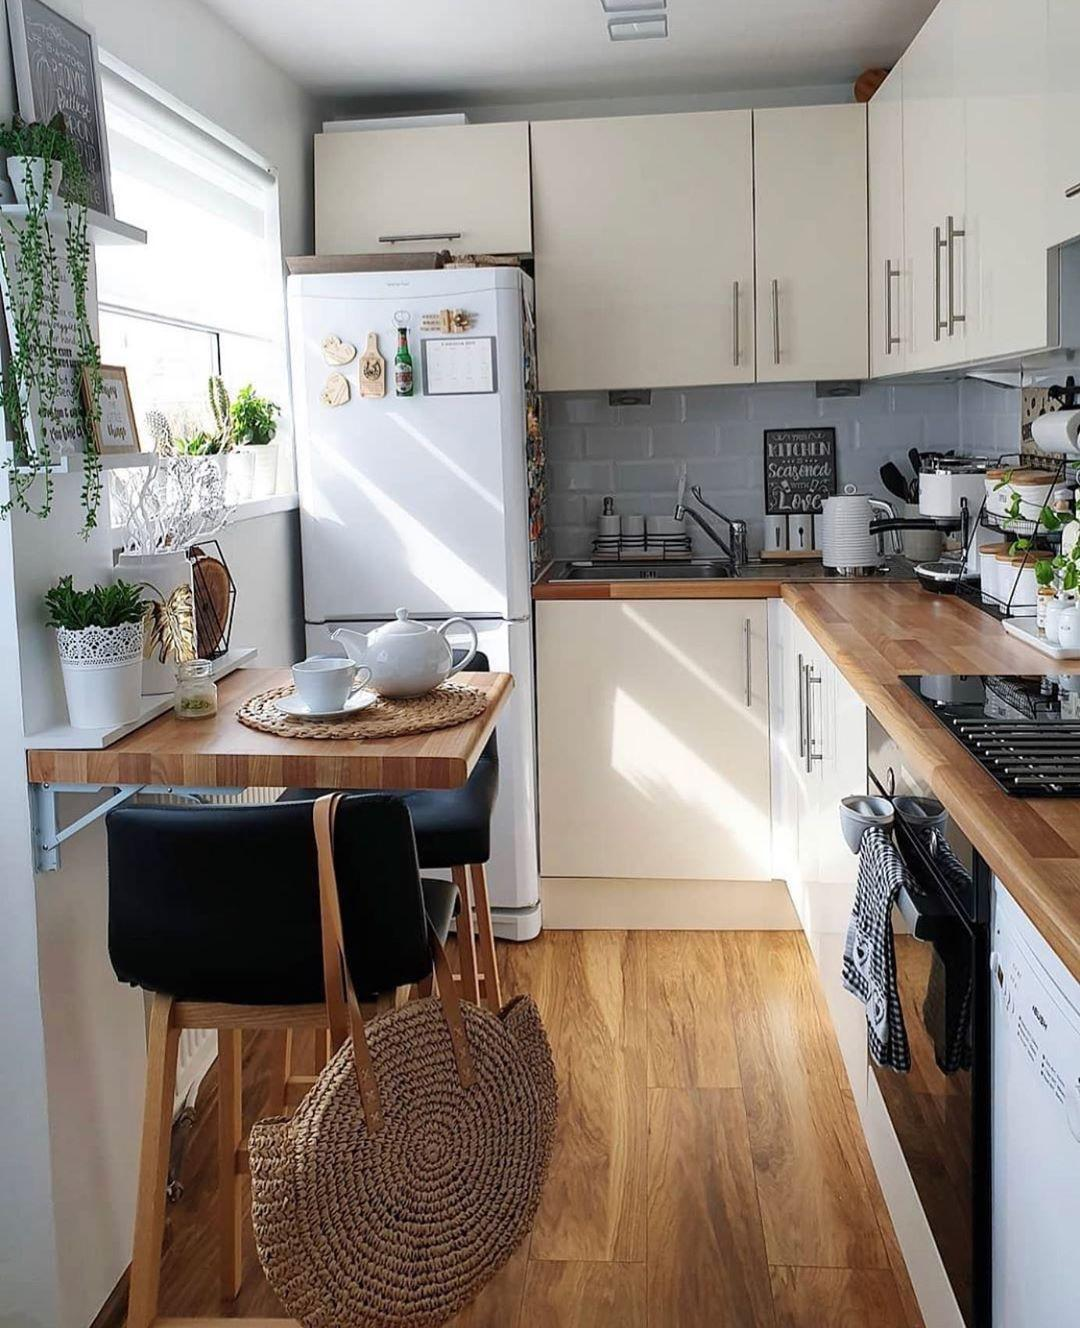 Inspiring Kitchen Design Ideas For Your Home - Page 34 of 35 - Liatsy Fashion